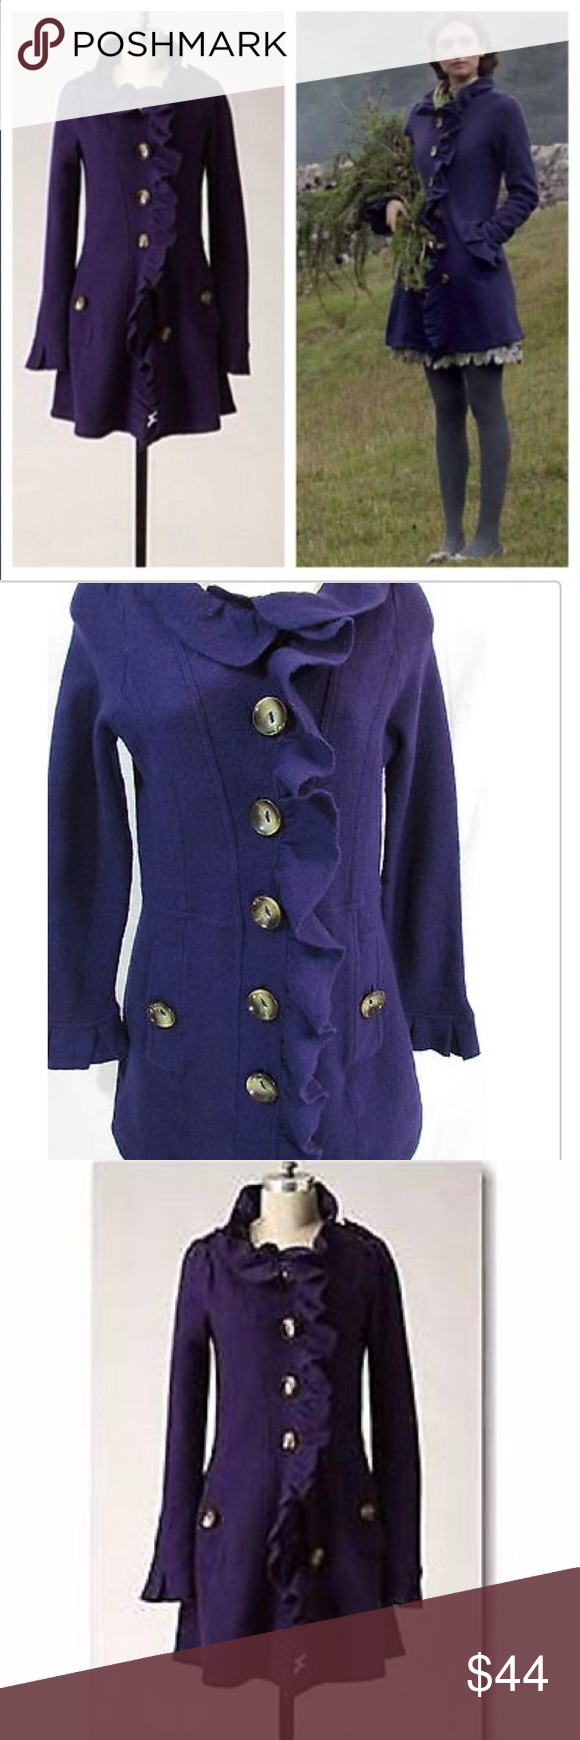 Anthropologie Gumshoe Sweater Coat Anthropologie Purple Gumshoe Sweater Coat by Charlie & Robin. Size Medium. 100% Wool. This gorgeous coat is soft + comfortable. It's the perfect combination of cozy + girly, and it works with almost anything! In great, pre-loved condition. Anthropologie Jackets & Coats Pea Coats